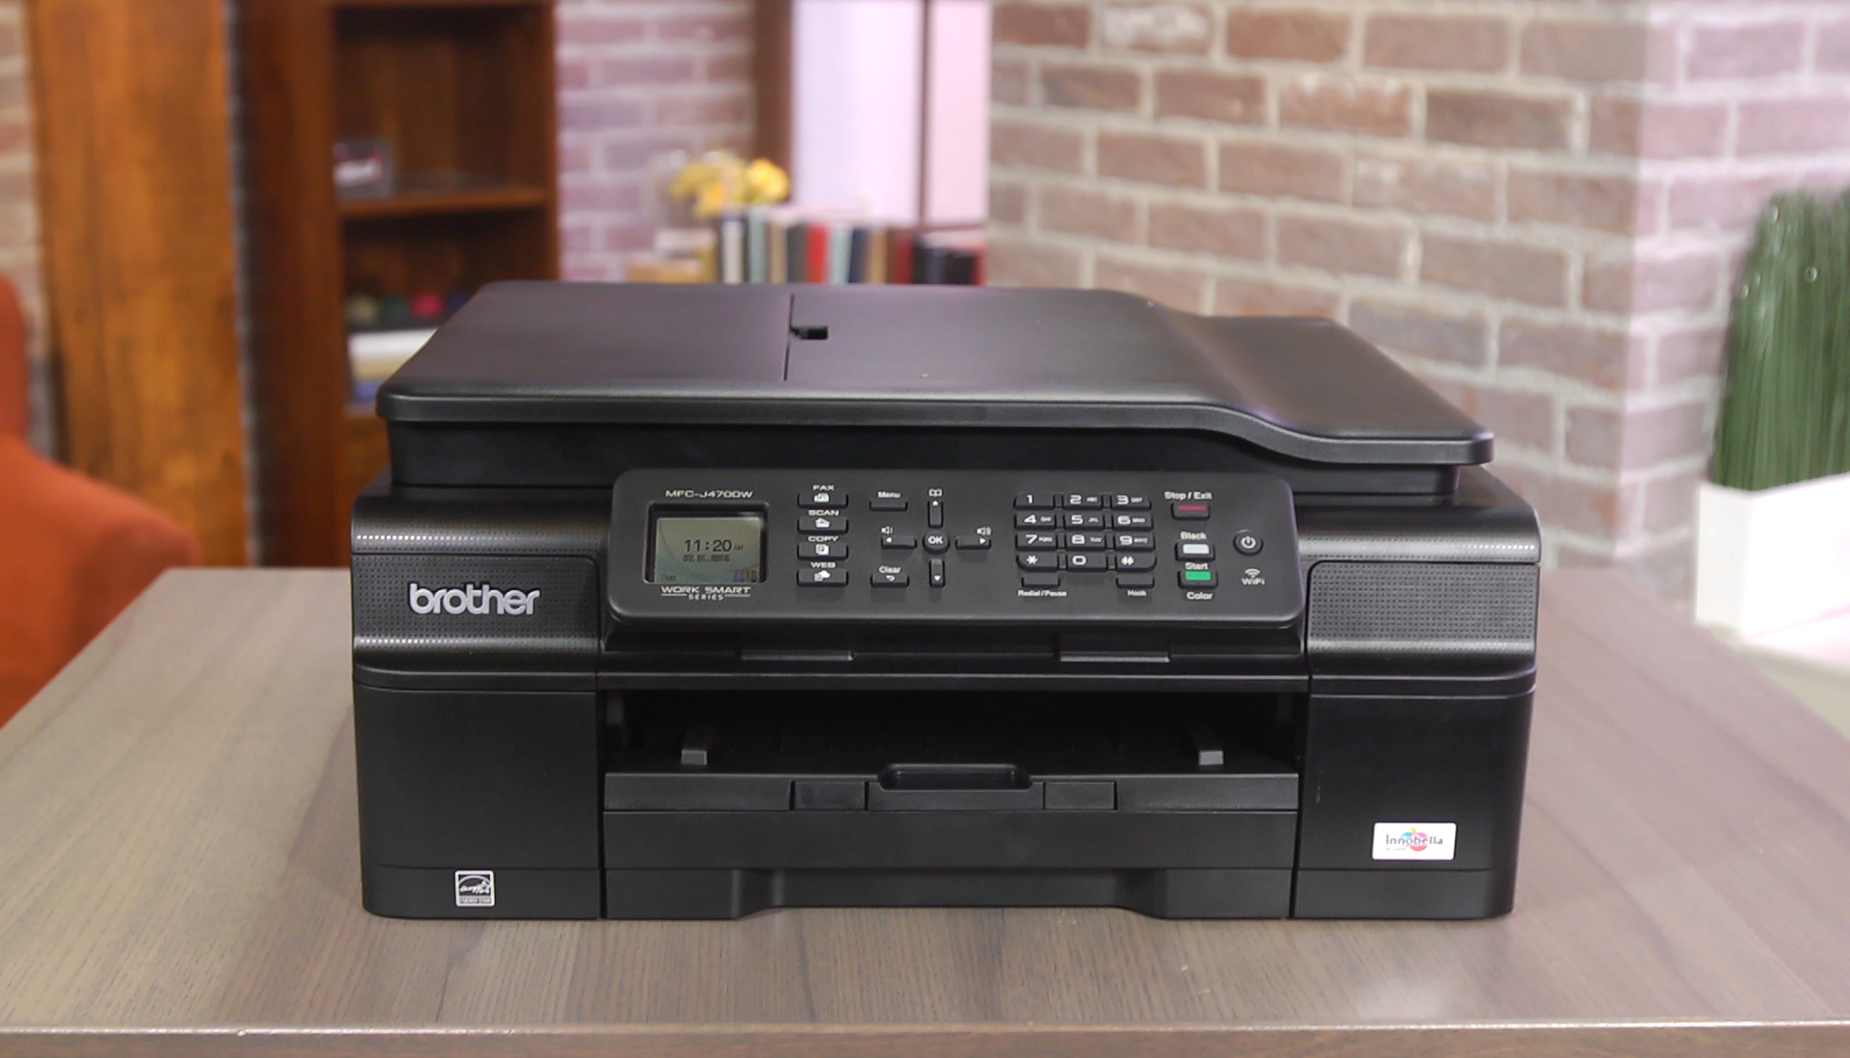 Video: The Brother MFC-470DW is a sub-$100 all-in-one printer that plays nicely with your smartphone